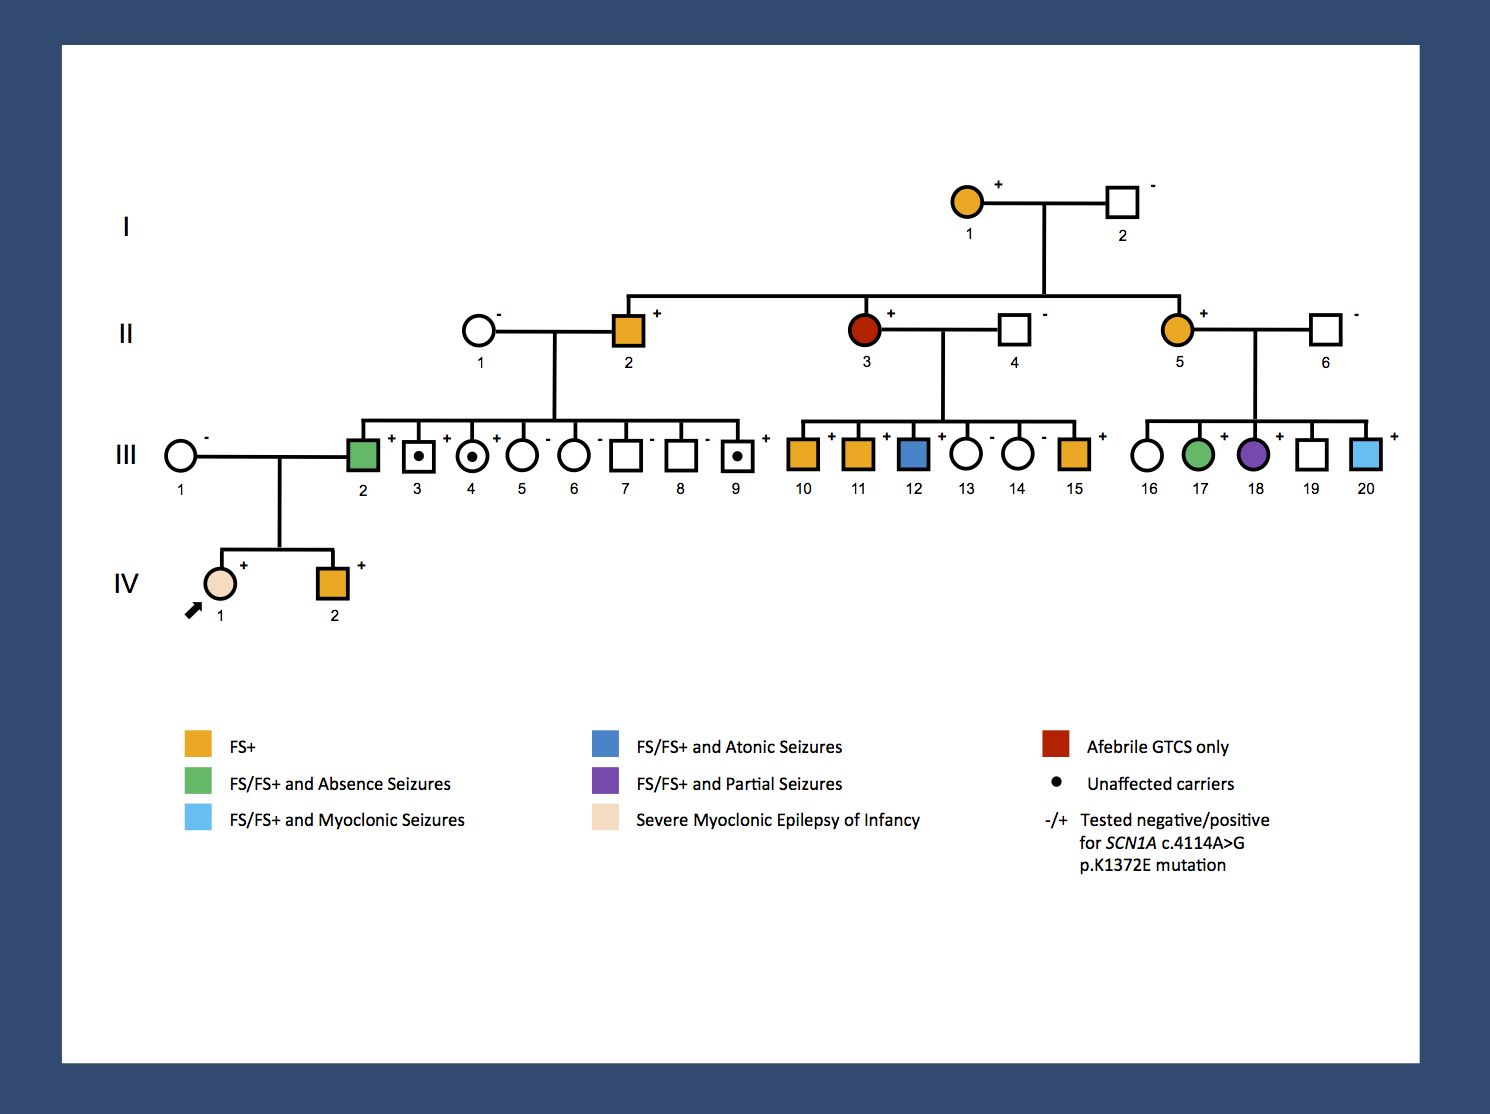 Re-posting one of our figures from November 2013 - a pedigree of a large GEFS+ family with 14 affected and 3 unaffected carriers published by Goldberg-Stern and colleagues. A missense mutation results in a broad range of phenotypes spanning unaffected carriers, Febrile Seizures Plus (FS+) phenotypes and Dravet Syndrome. The range of phenotypes seen in this family suggests that SCN1A is not the entire story. It will be interesting to investigate whether the modifying factors are genetic or non-genetic. The pattern of phenotypes suggests some intra-familial factors. (Disclaimer: I am a coauthor on the publication by Goldberg-Stern and colleagues).